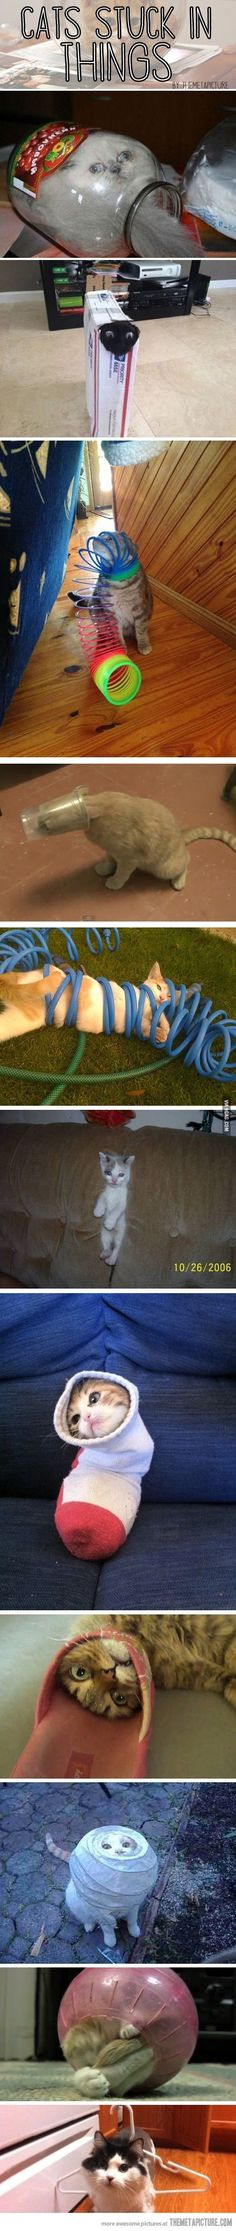 Cats stuck in things I almost peed my pants laughing